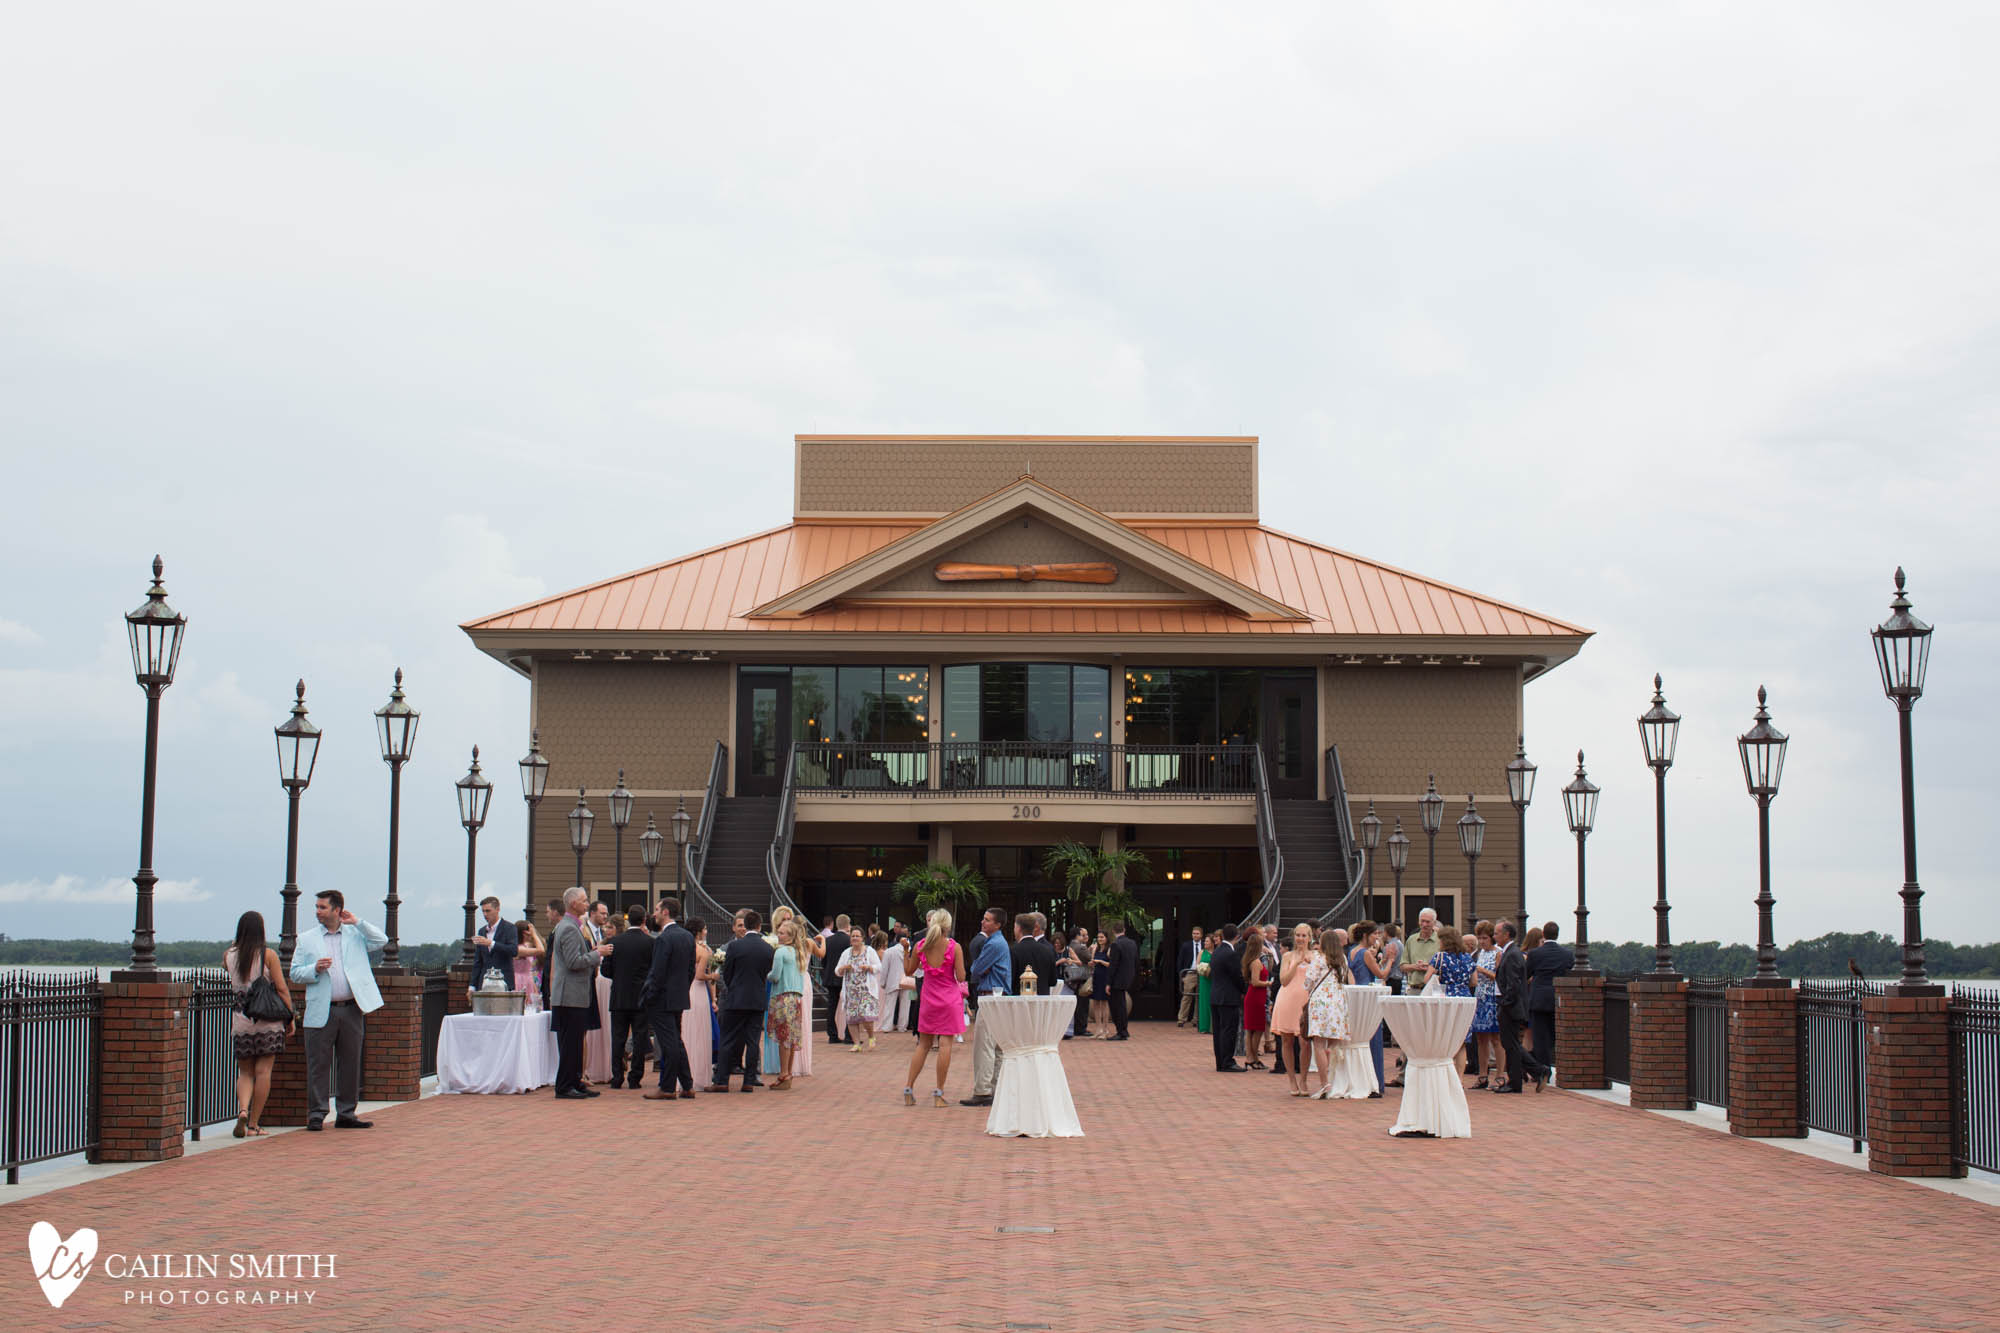 Nicki_Craig_Tavares_Pavilion_On_The_Lake_Wedding_Photography_0066.jpg